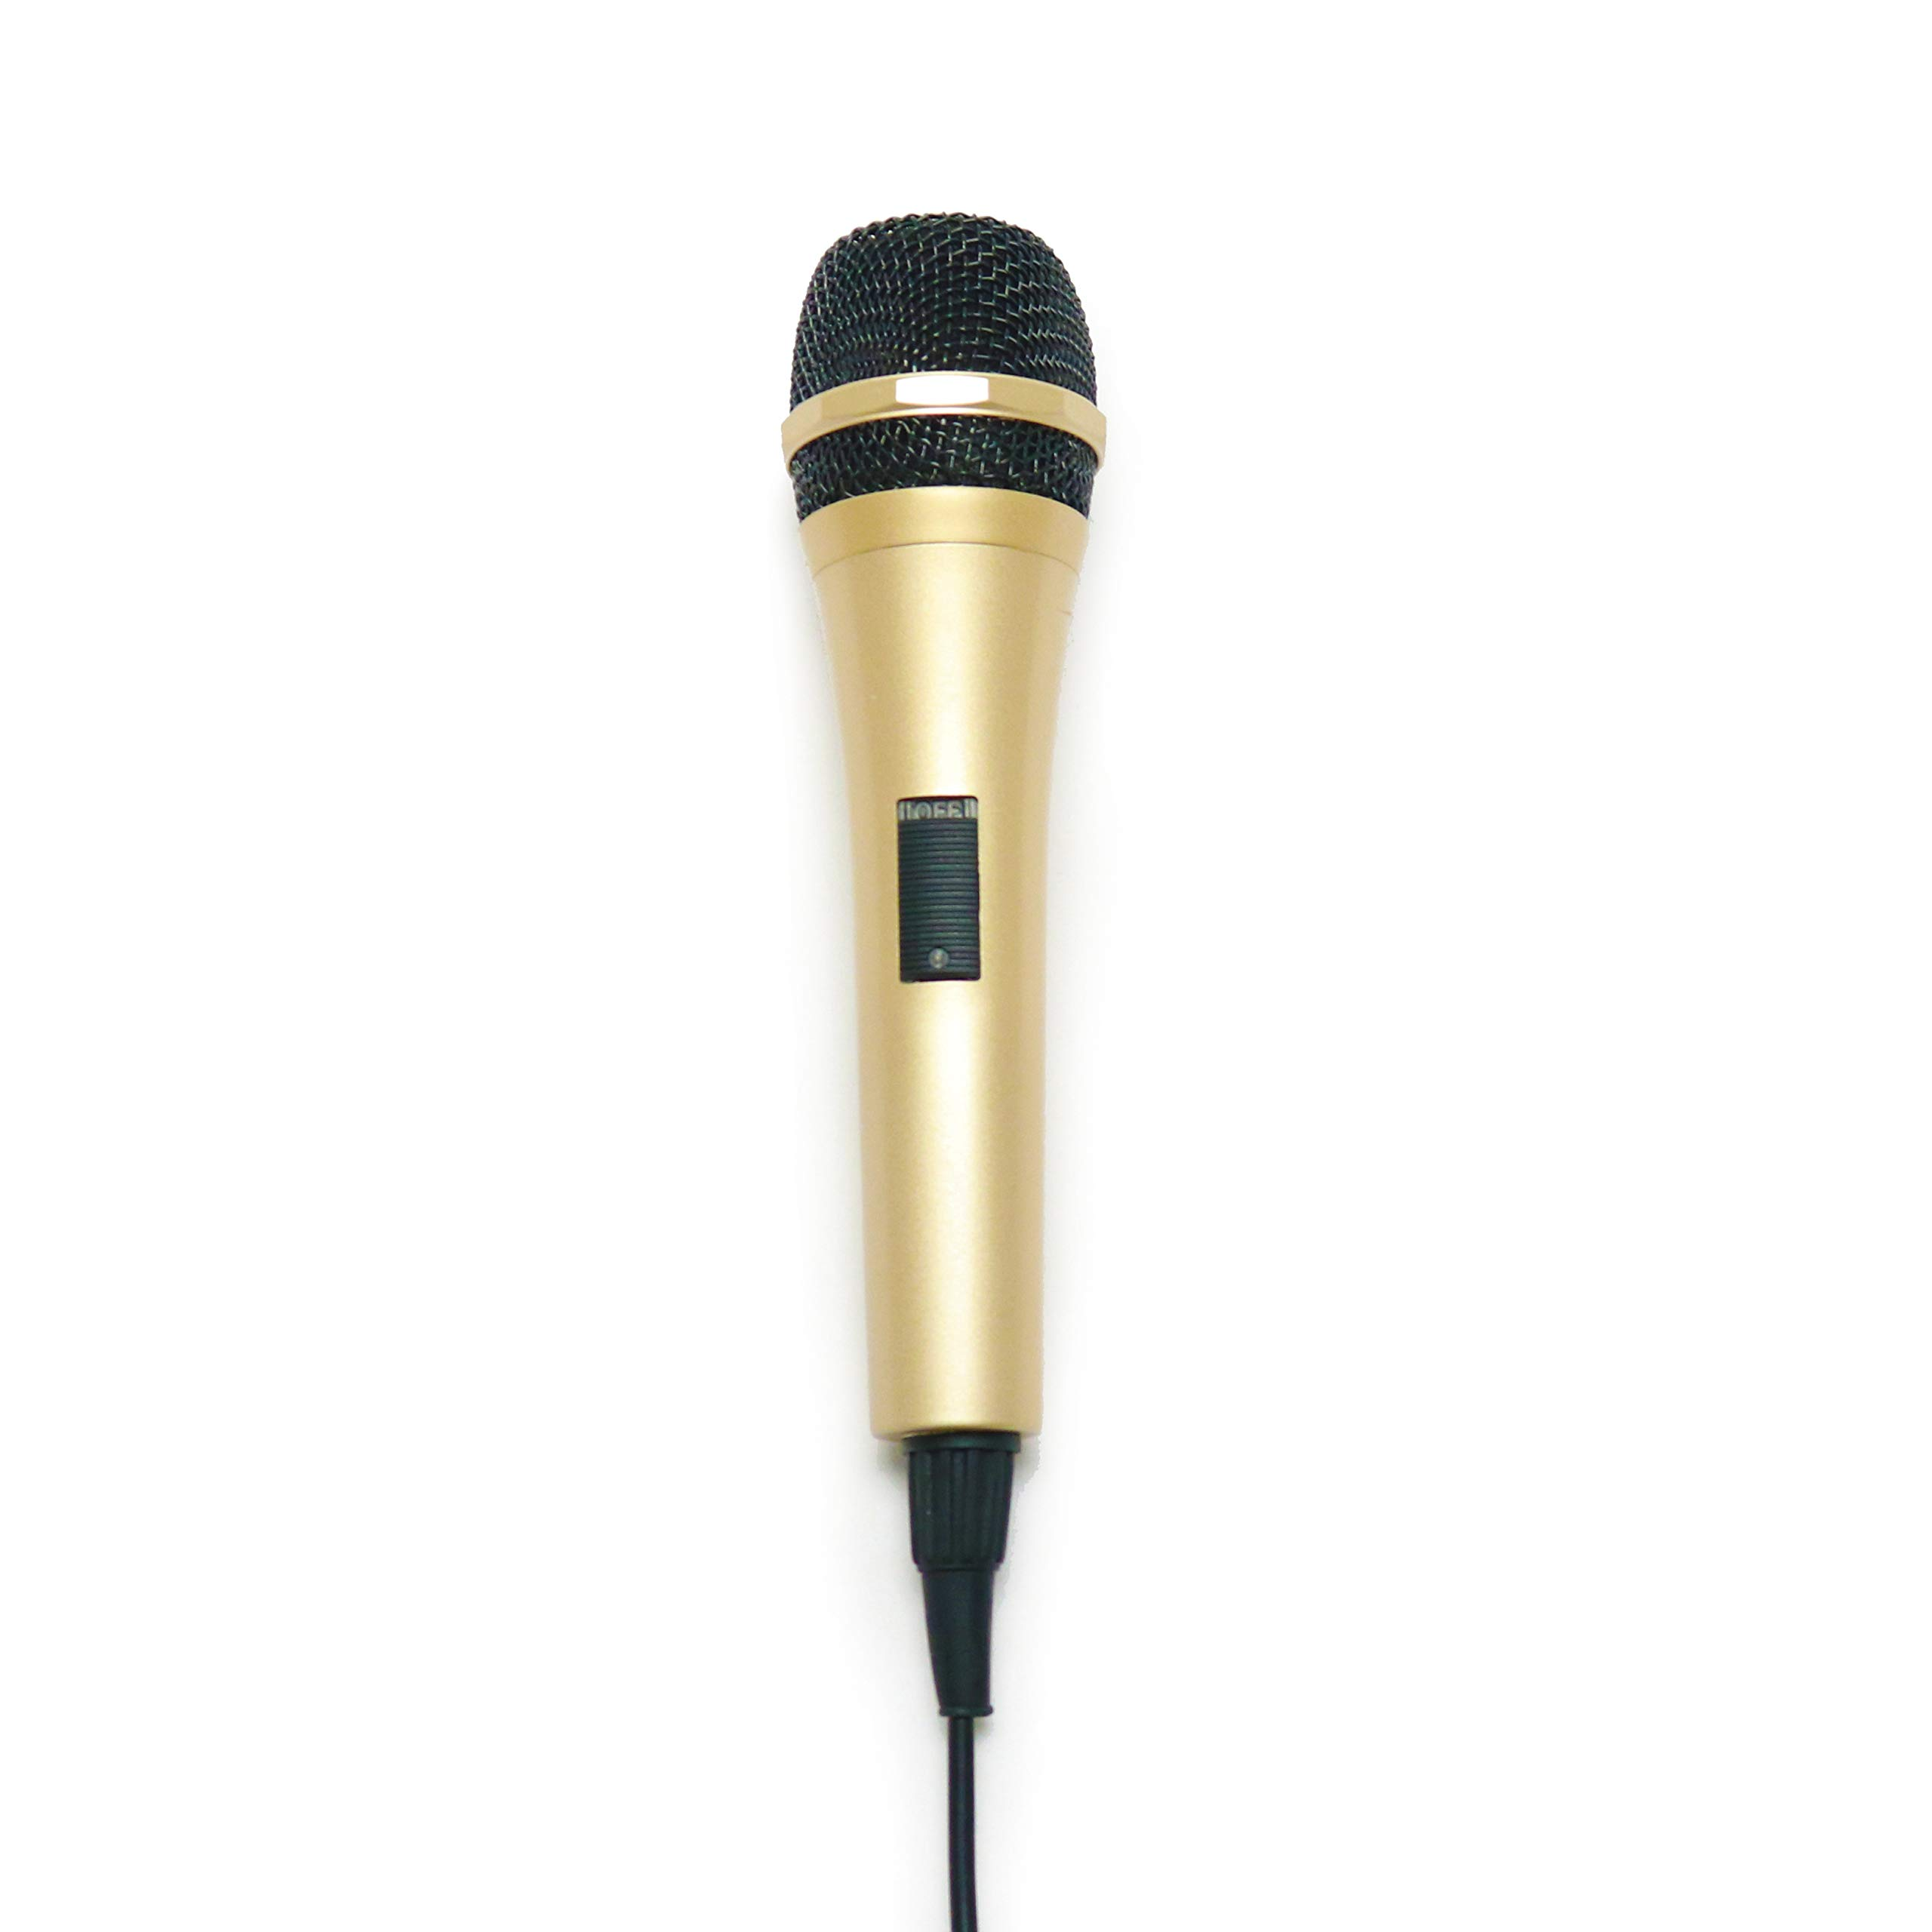 Singing Machine Vocal Dynamic Microphone, Gold (SMM290) by Singing Machine